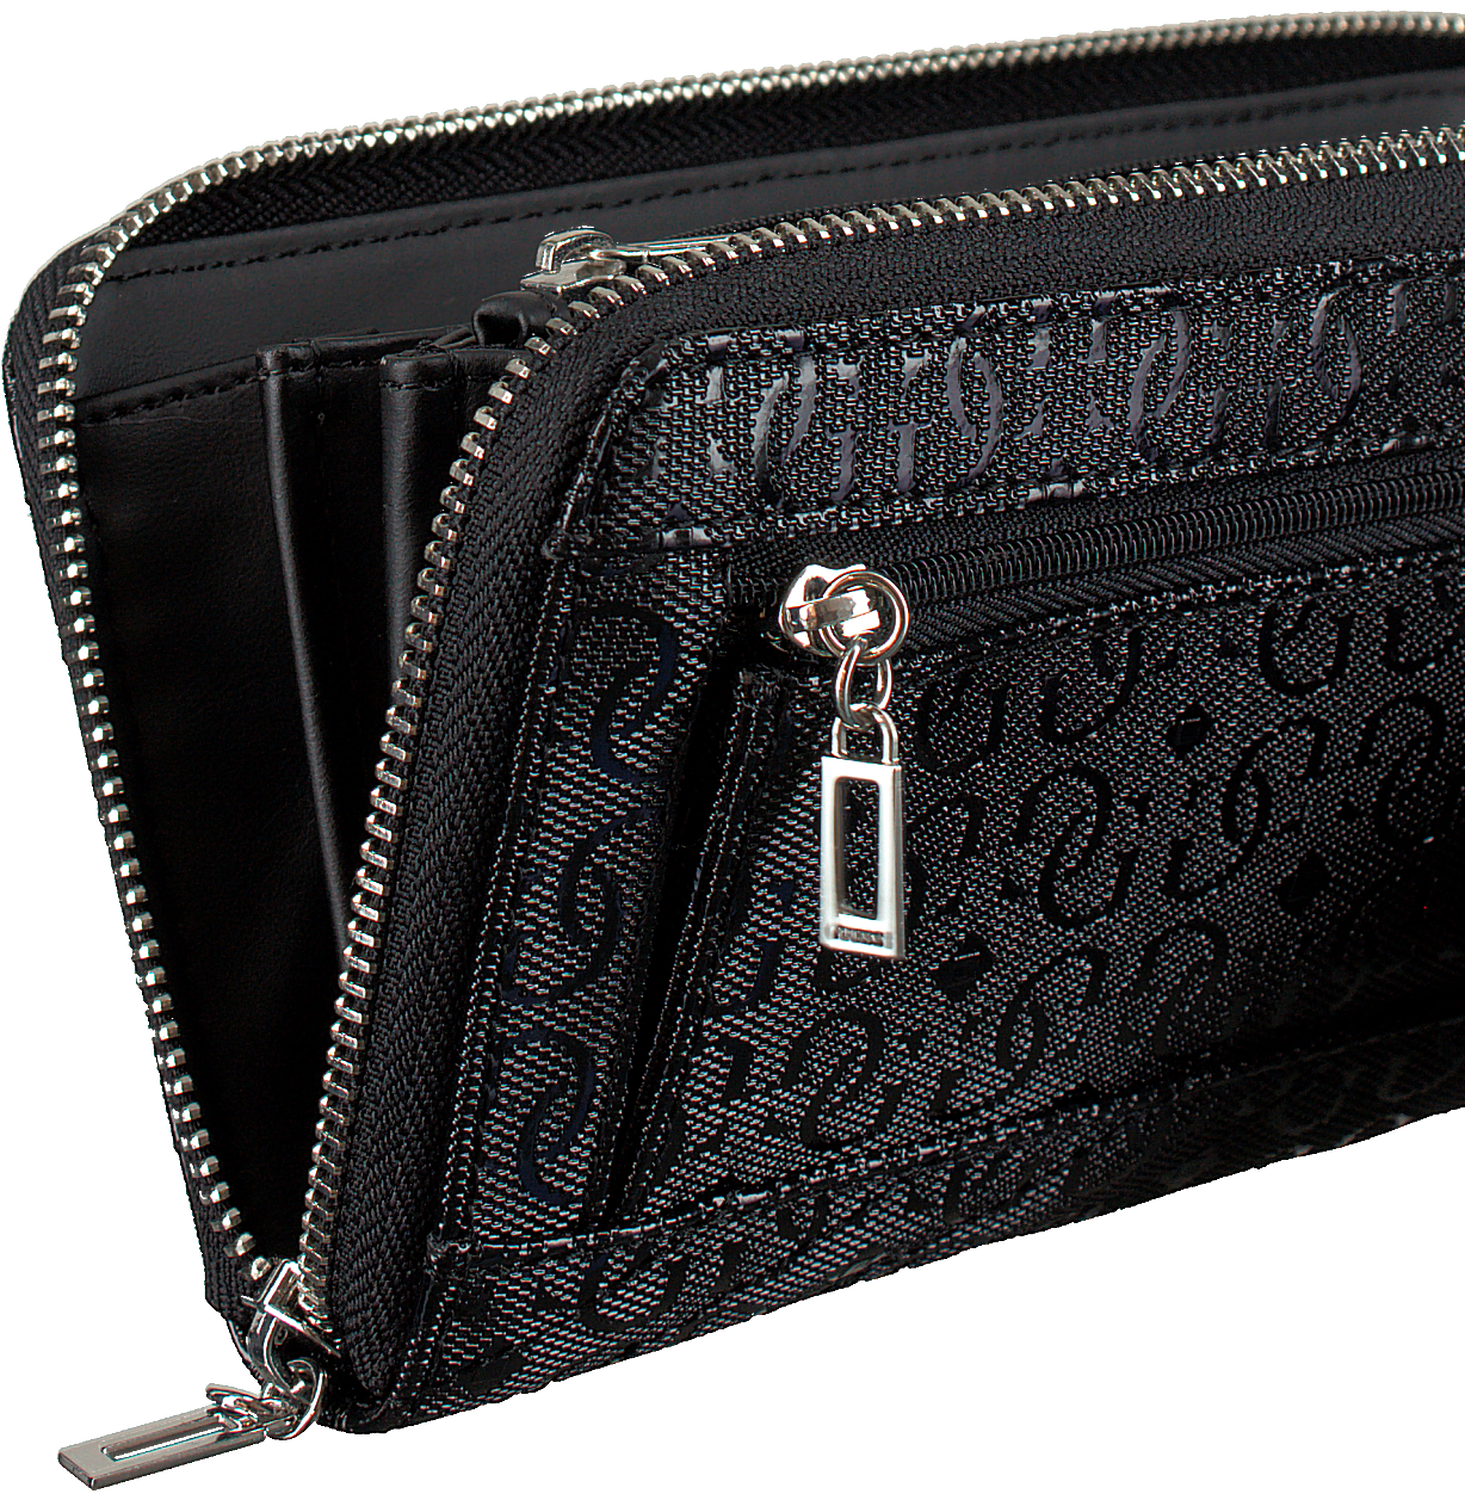 Portemonnee Guess Dames.Guess Portemonnee Swsy67 80460 Omoda Nl